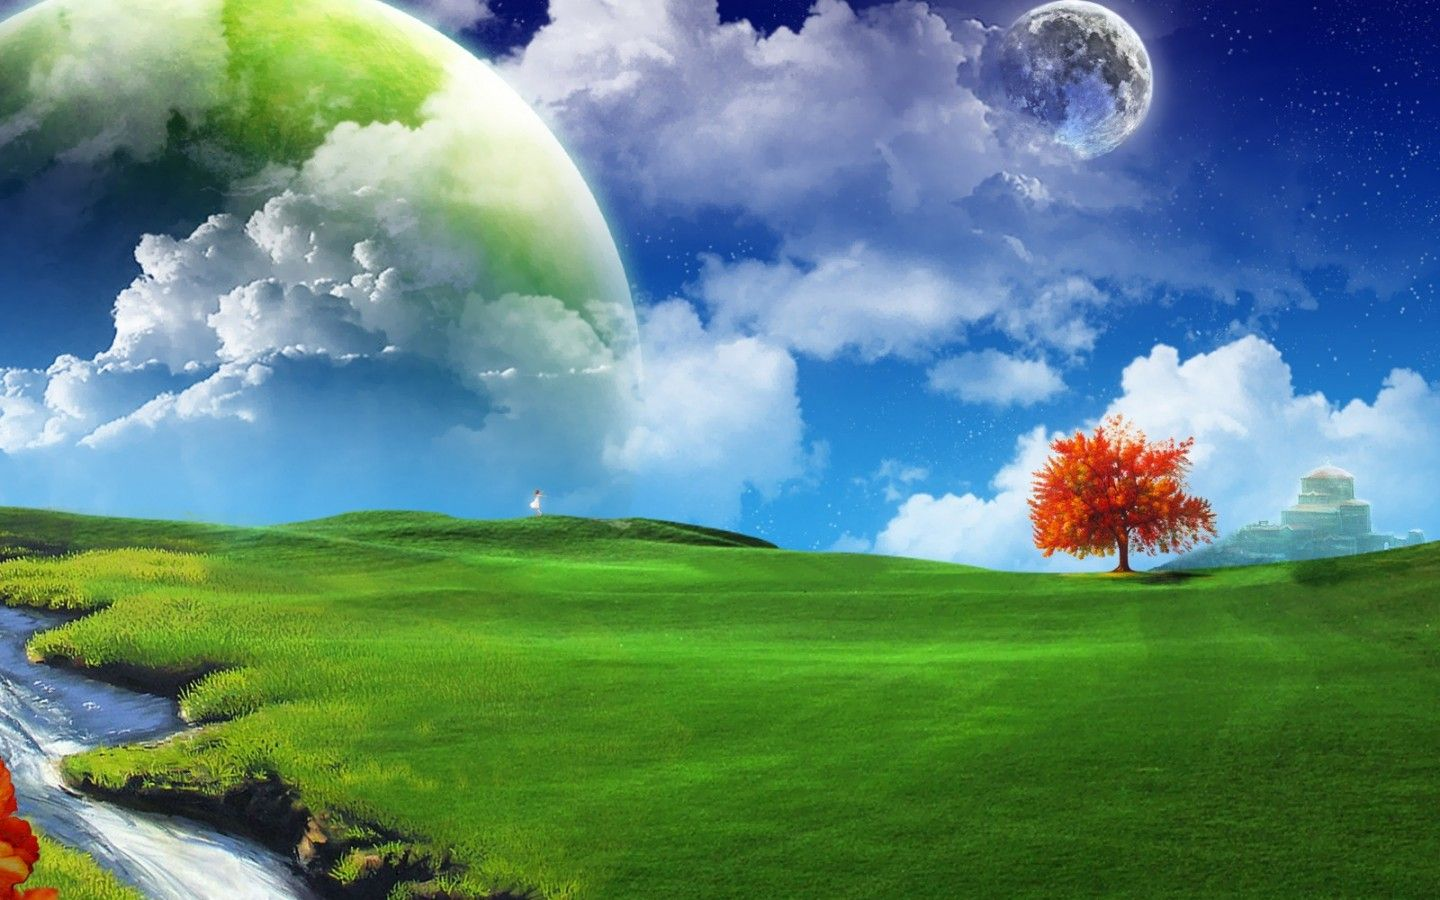 3d images of nature free download - Google Search | Hd ...